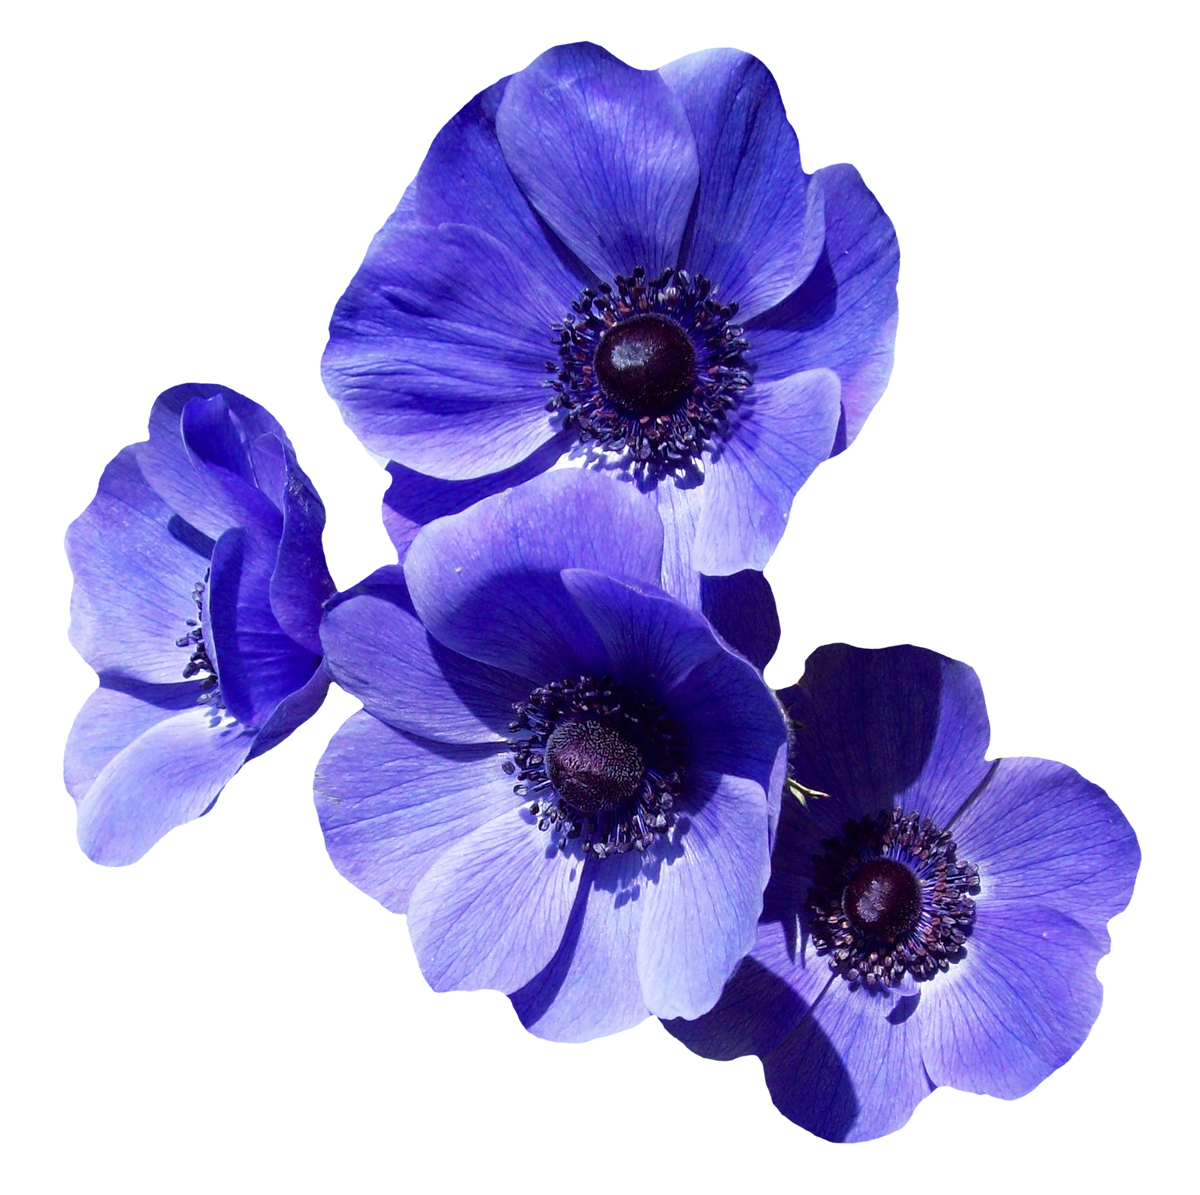 Purple Flower PNG Image.